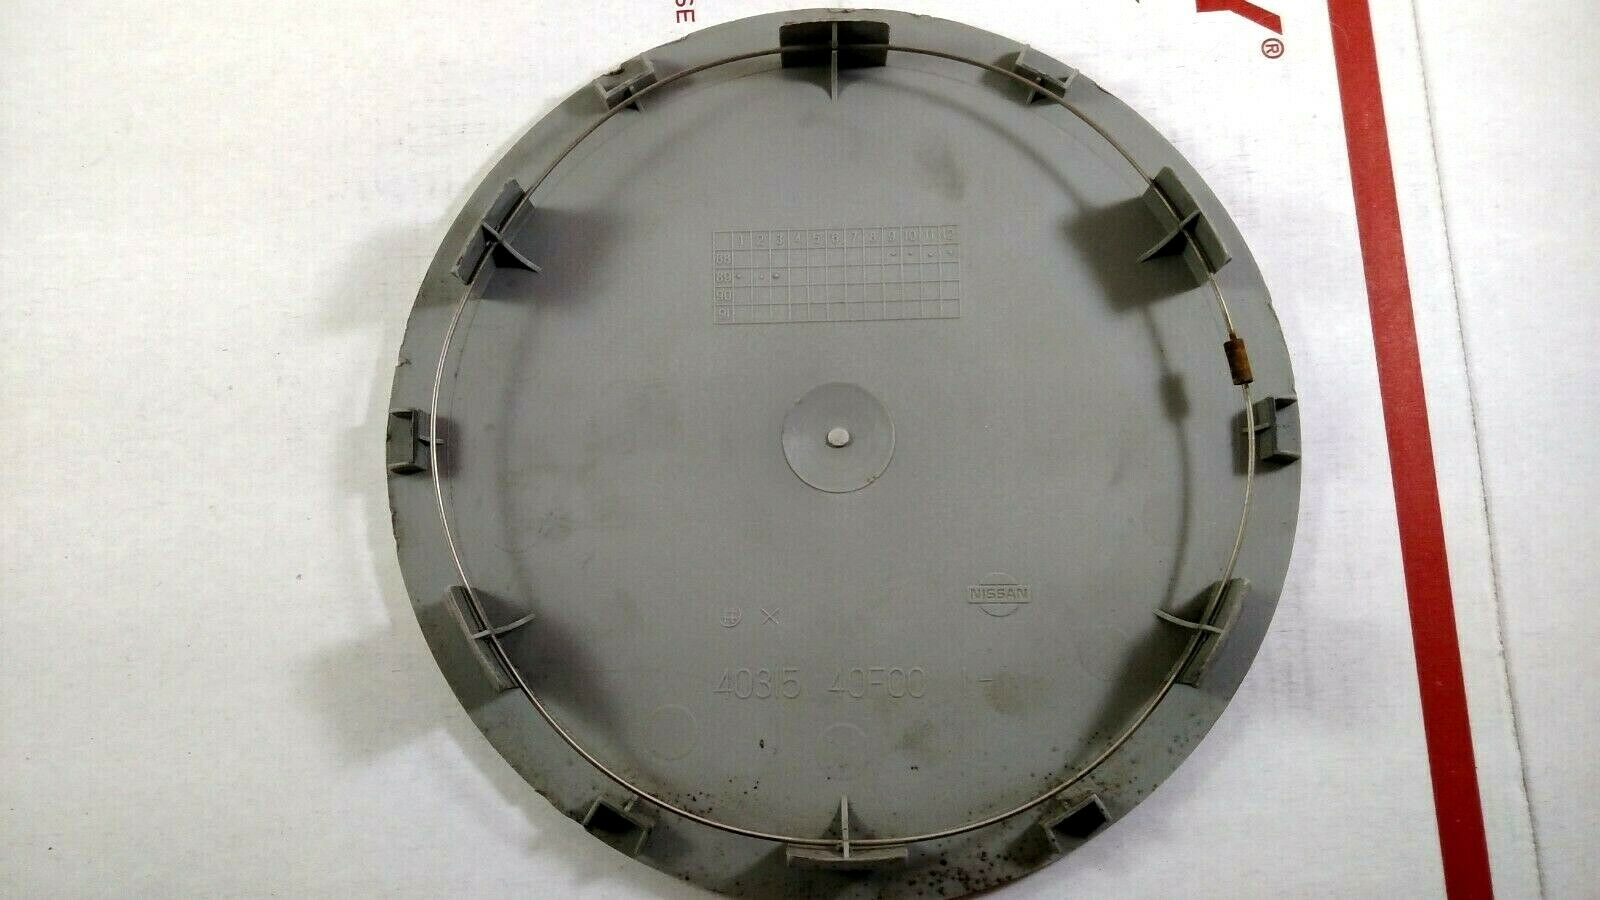 89-94 Nissan 240SX or Maxima OEM Wheel Center Hub Cap Cover Factory Disc GXE Does not apply